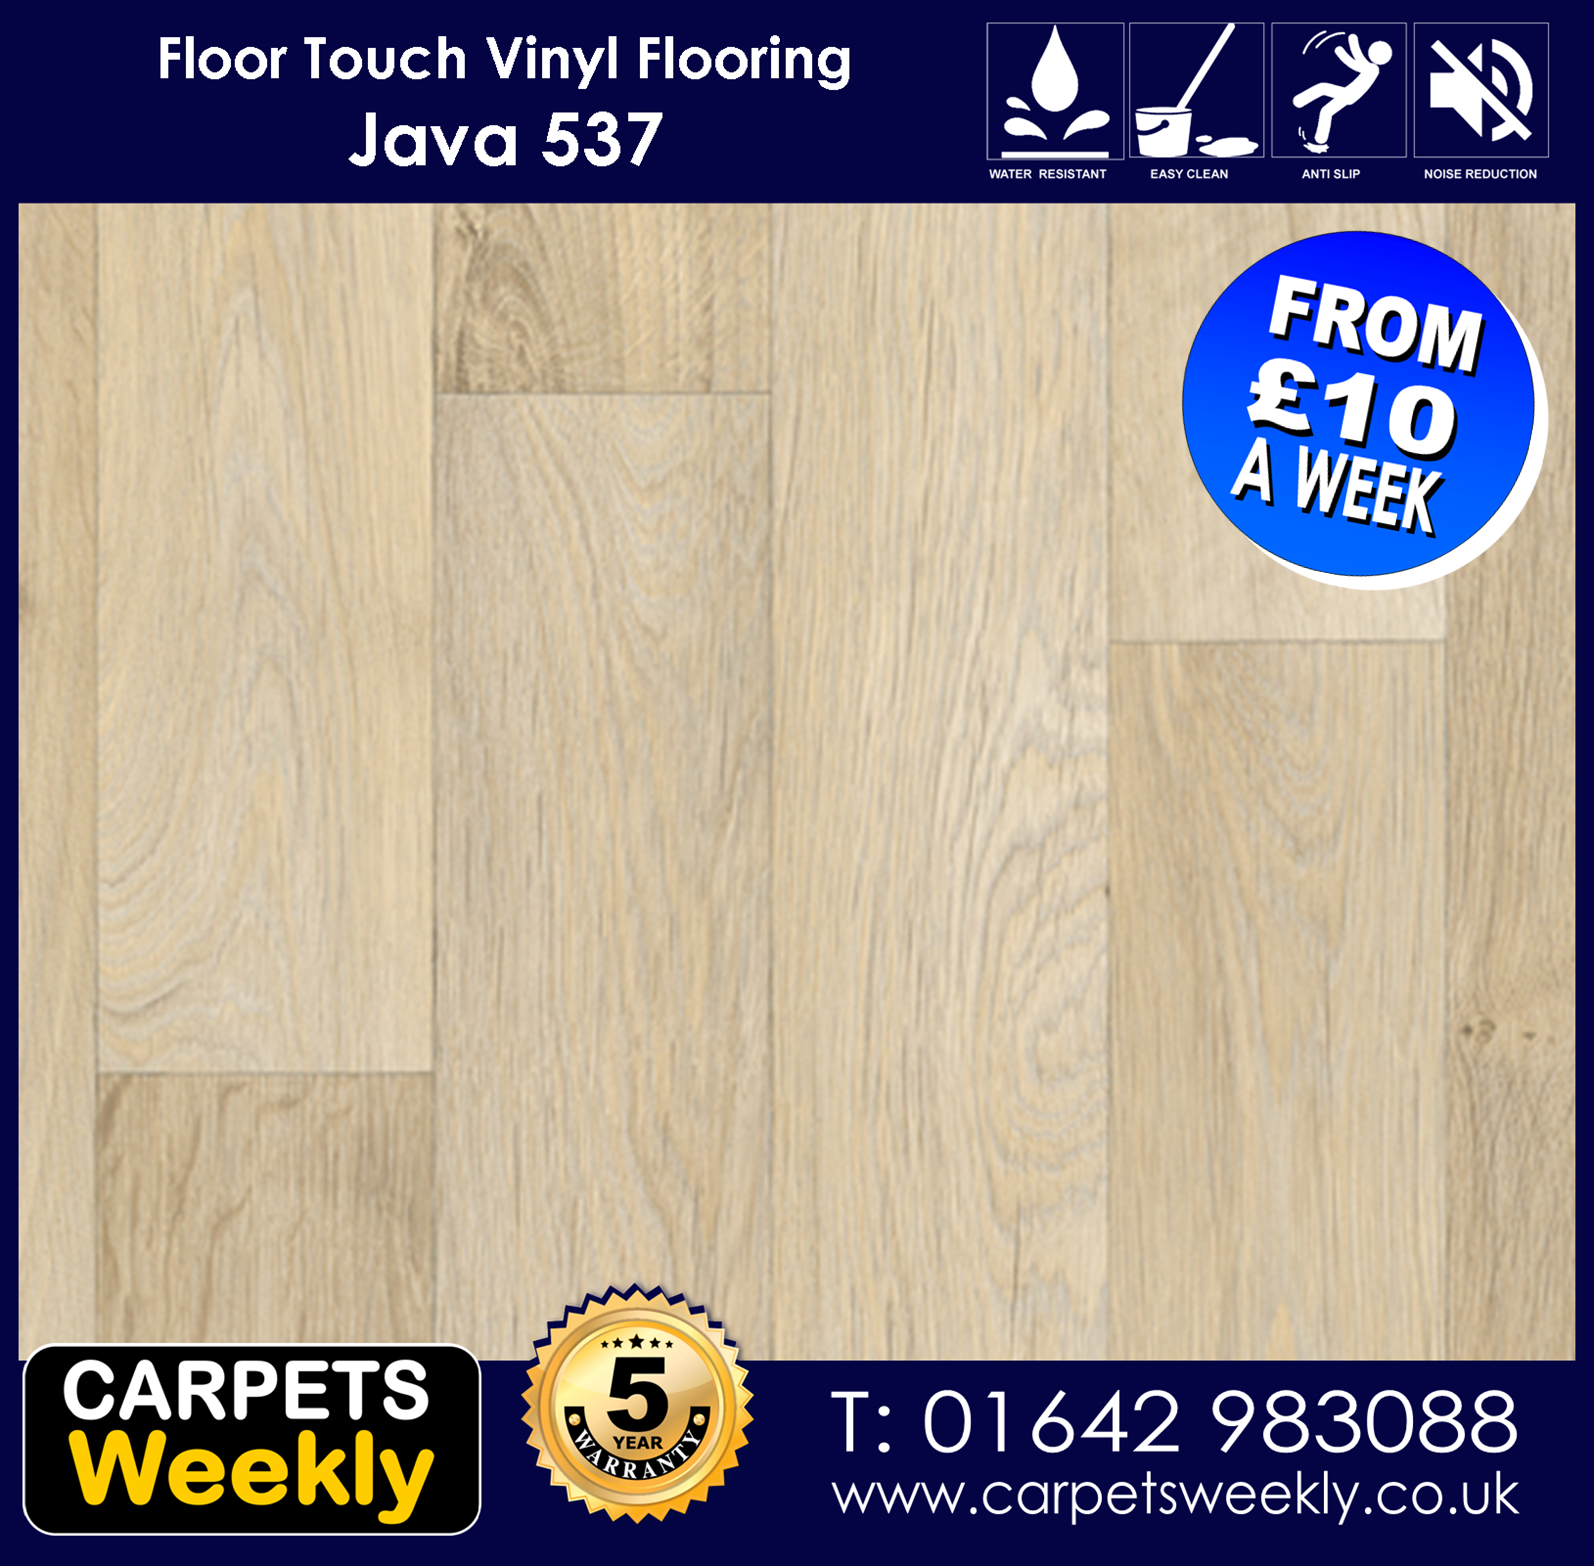 Java 537 Vinyl Flooring by Floor Touch from Carpets Weekly